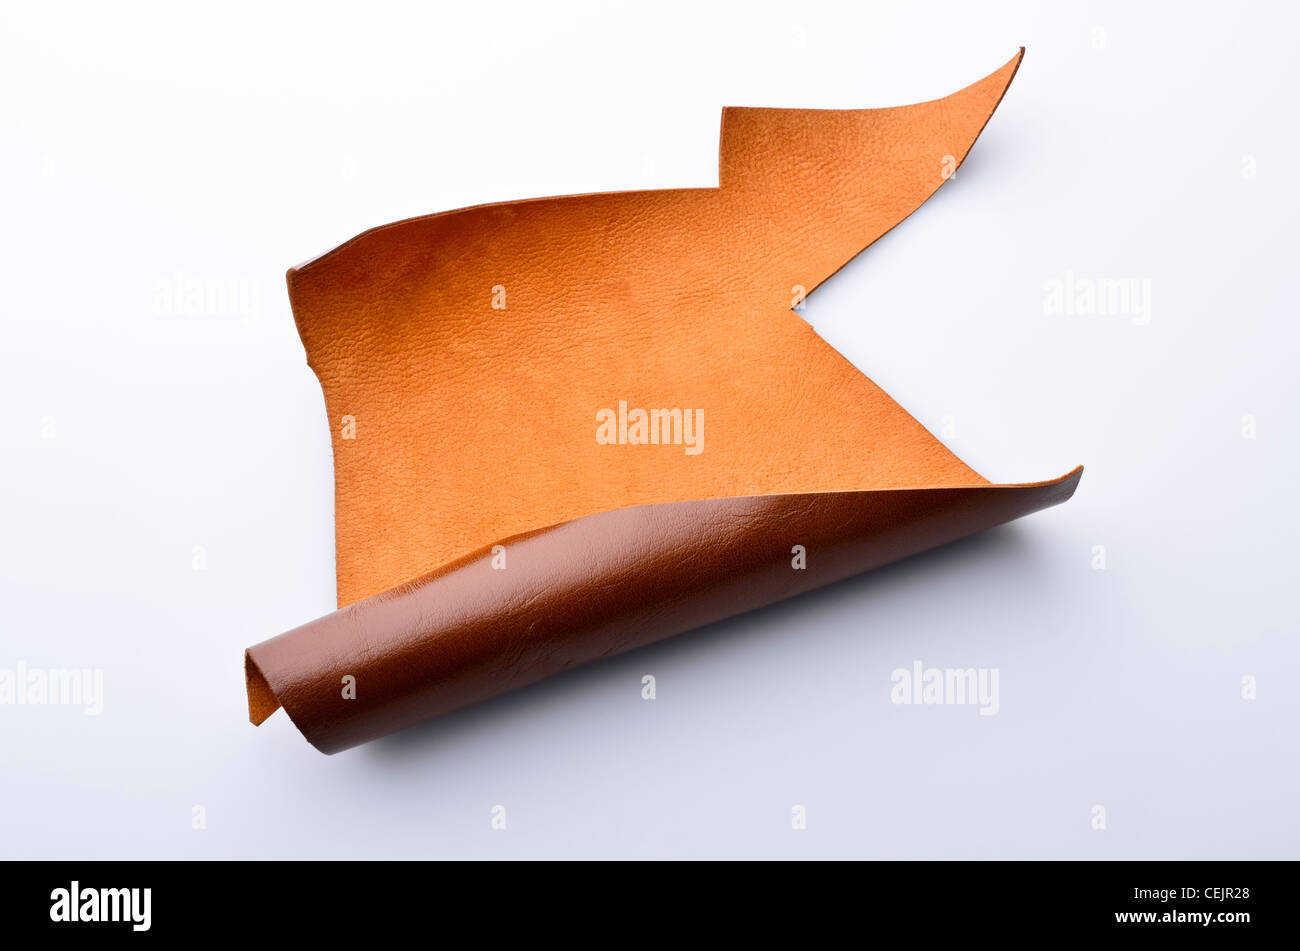 Piece of brown leather - Stock Image